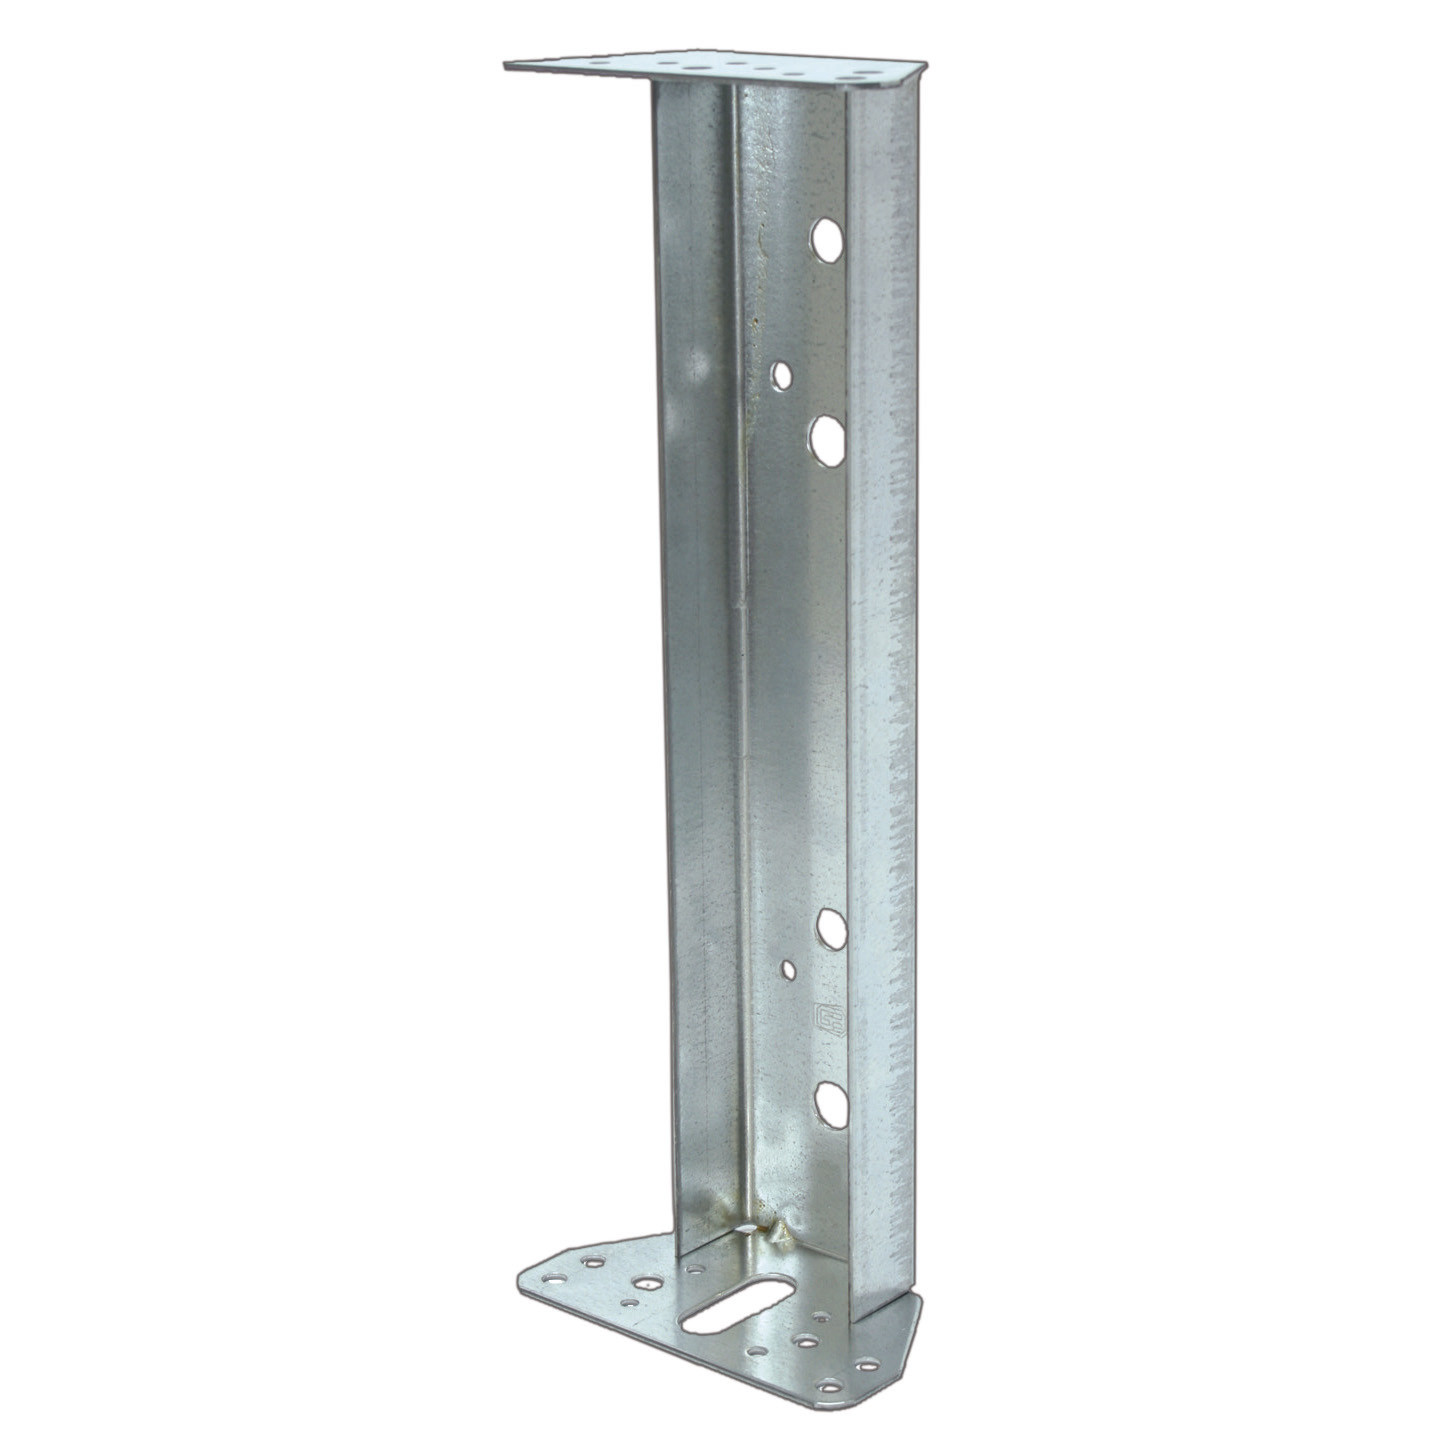 Window front frame support 60x70x460 115x2 ZM